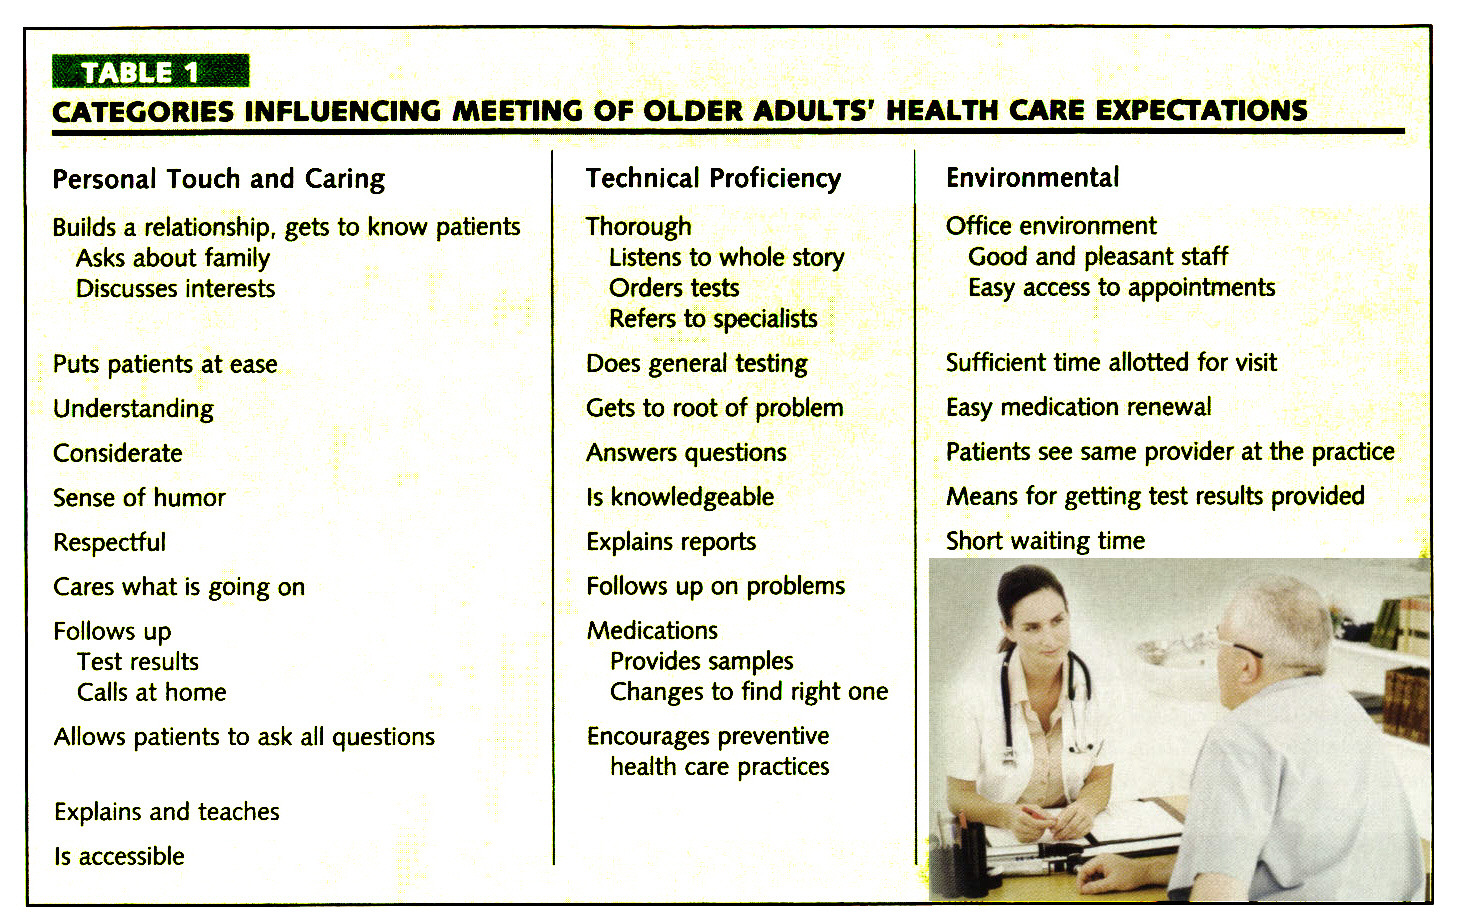 TABLE 1CATEGORIES INFLUENCING MEETING OF OLDER ADULTS' HEALTH CARE EXPECTATIONS